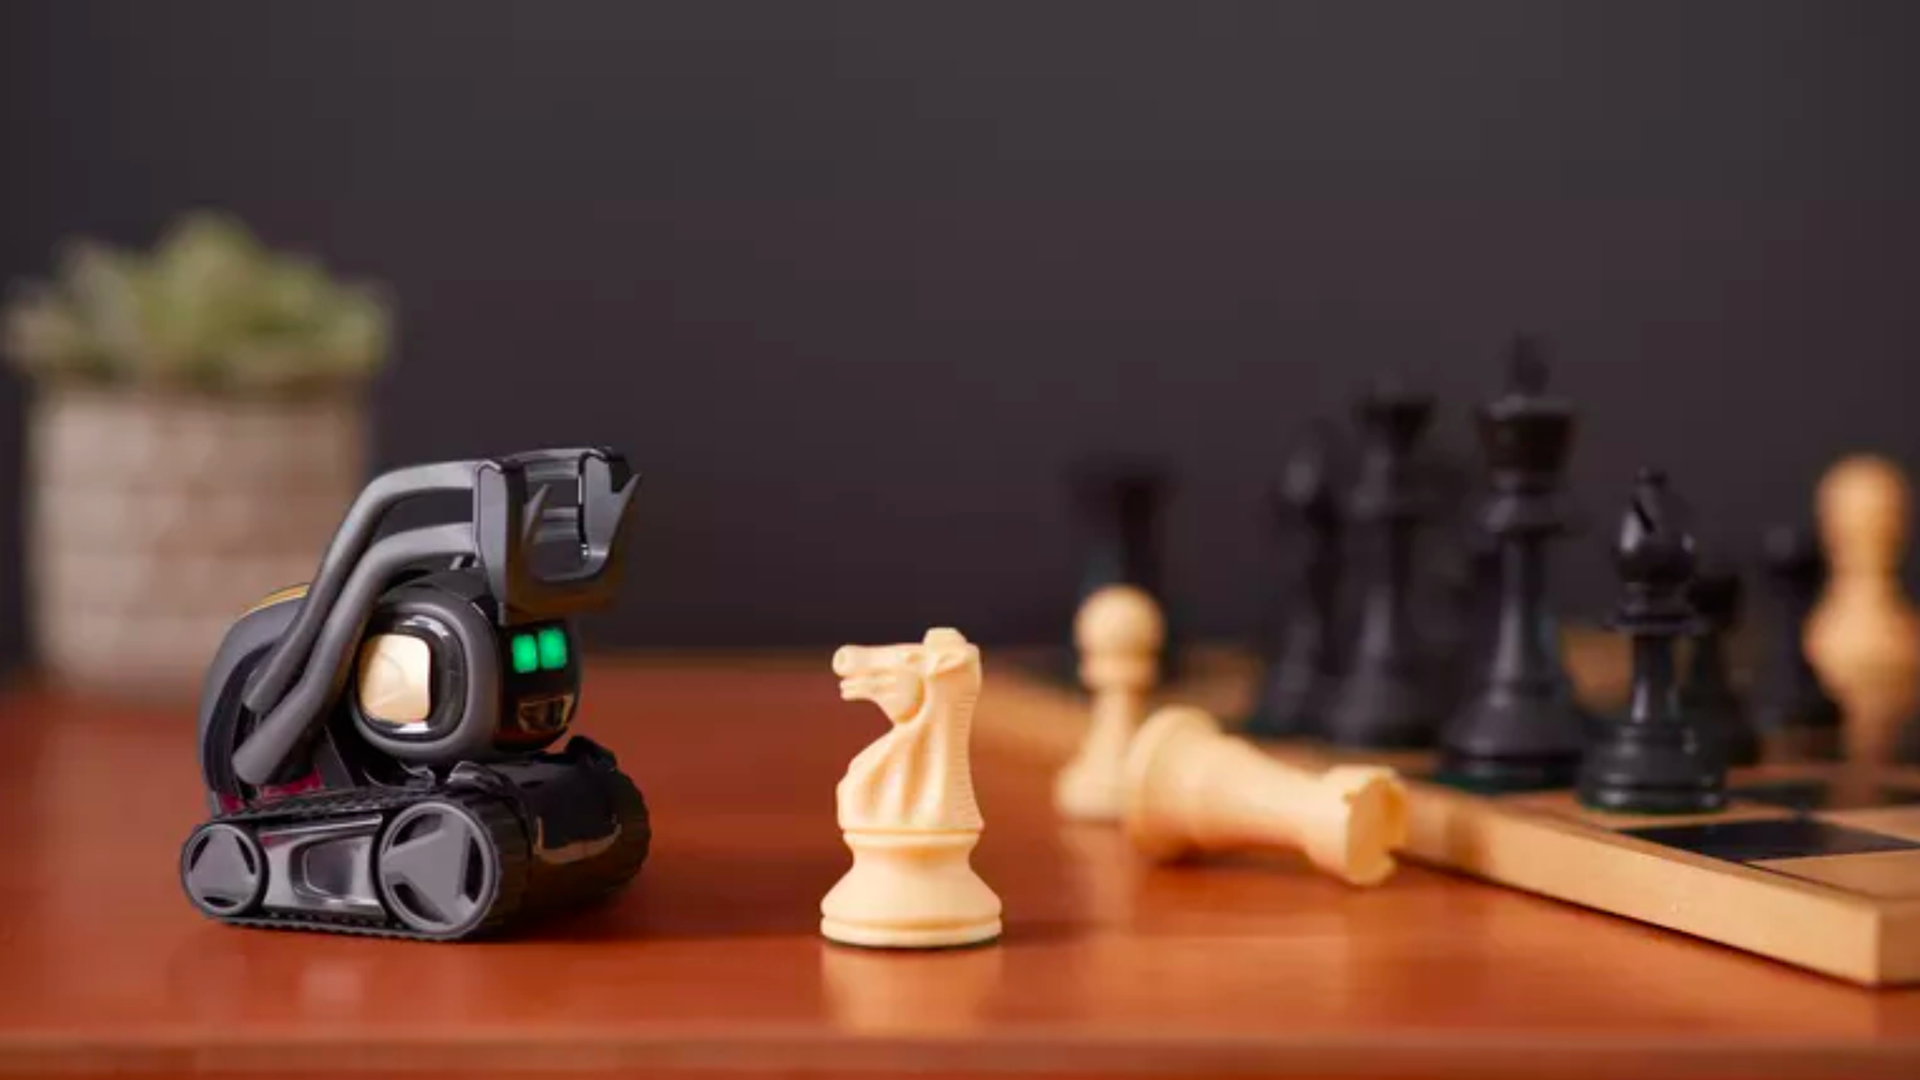 In this image, an Anki robot faces a chess board and a rook stands in front of it.